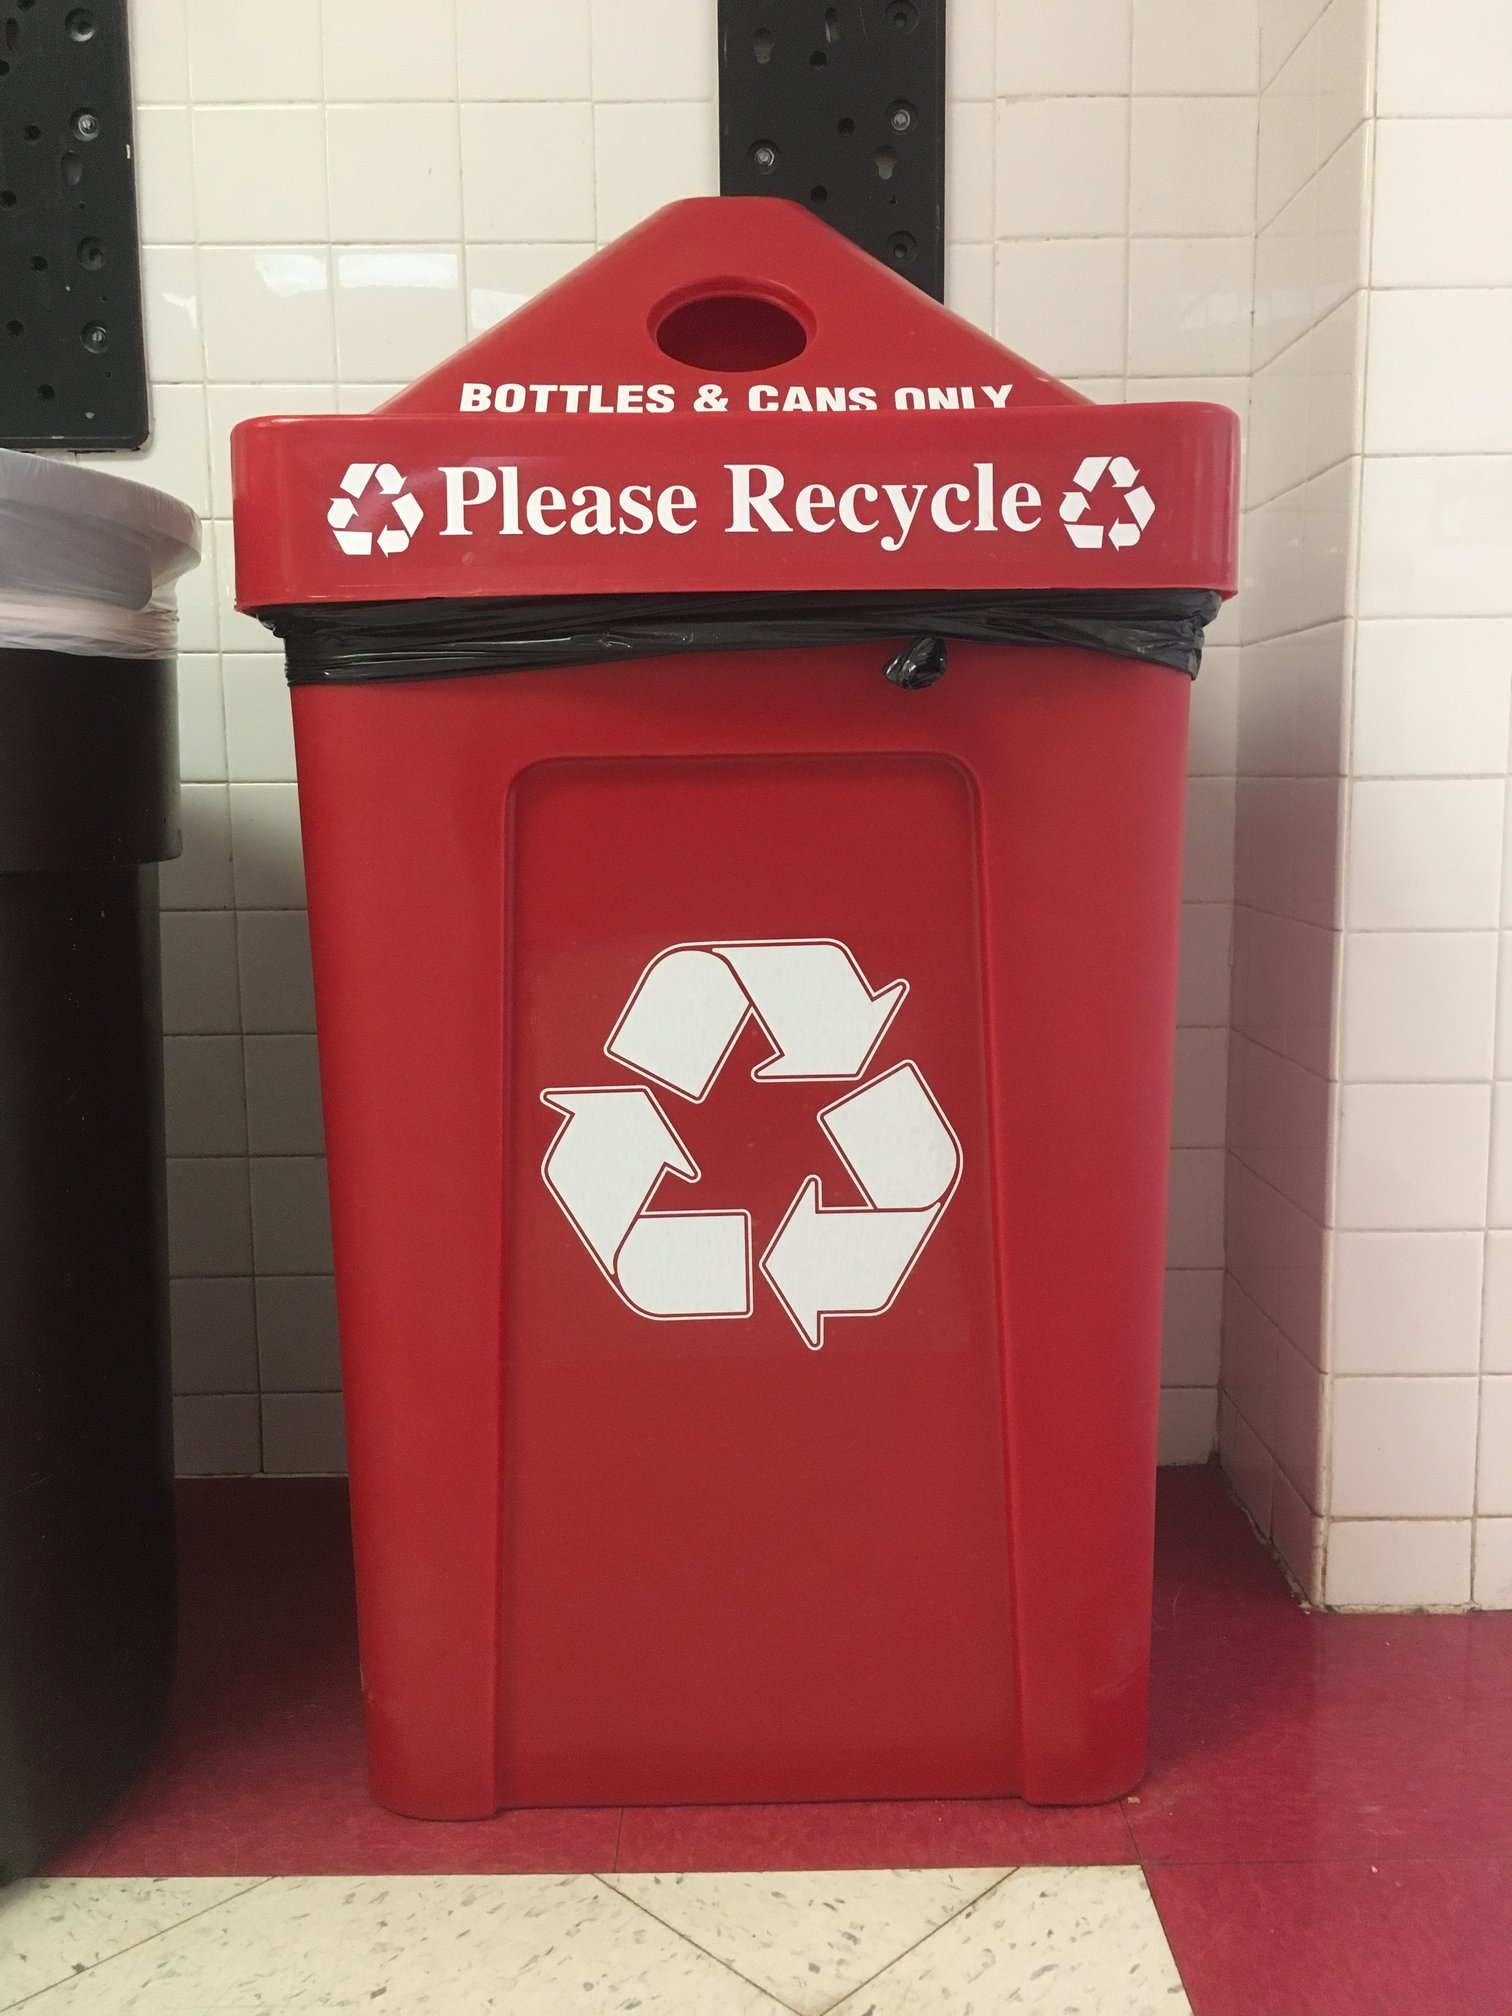 One of the new red recycling bins located next to the rock entrance